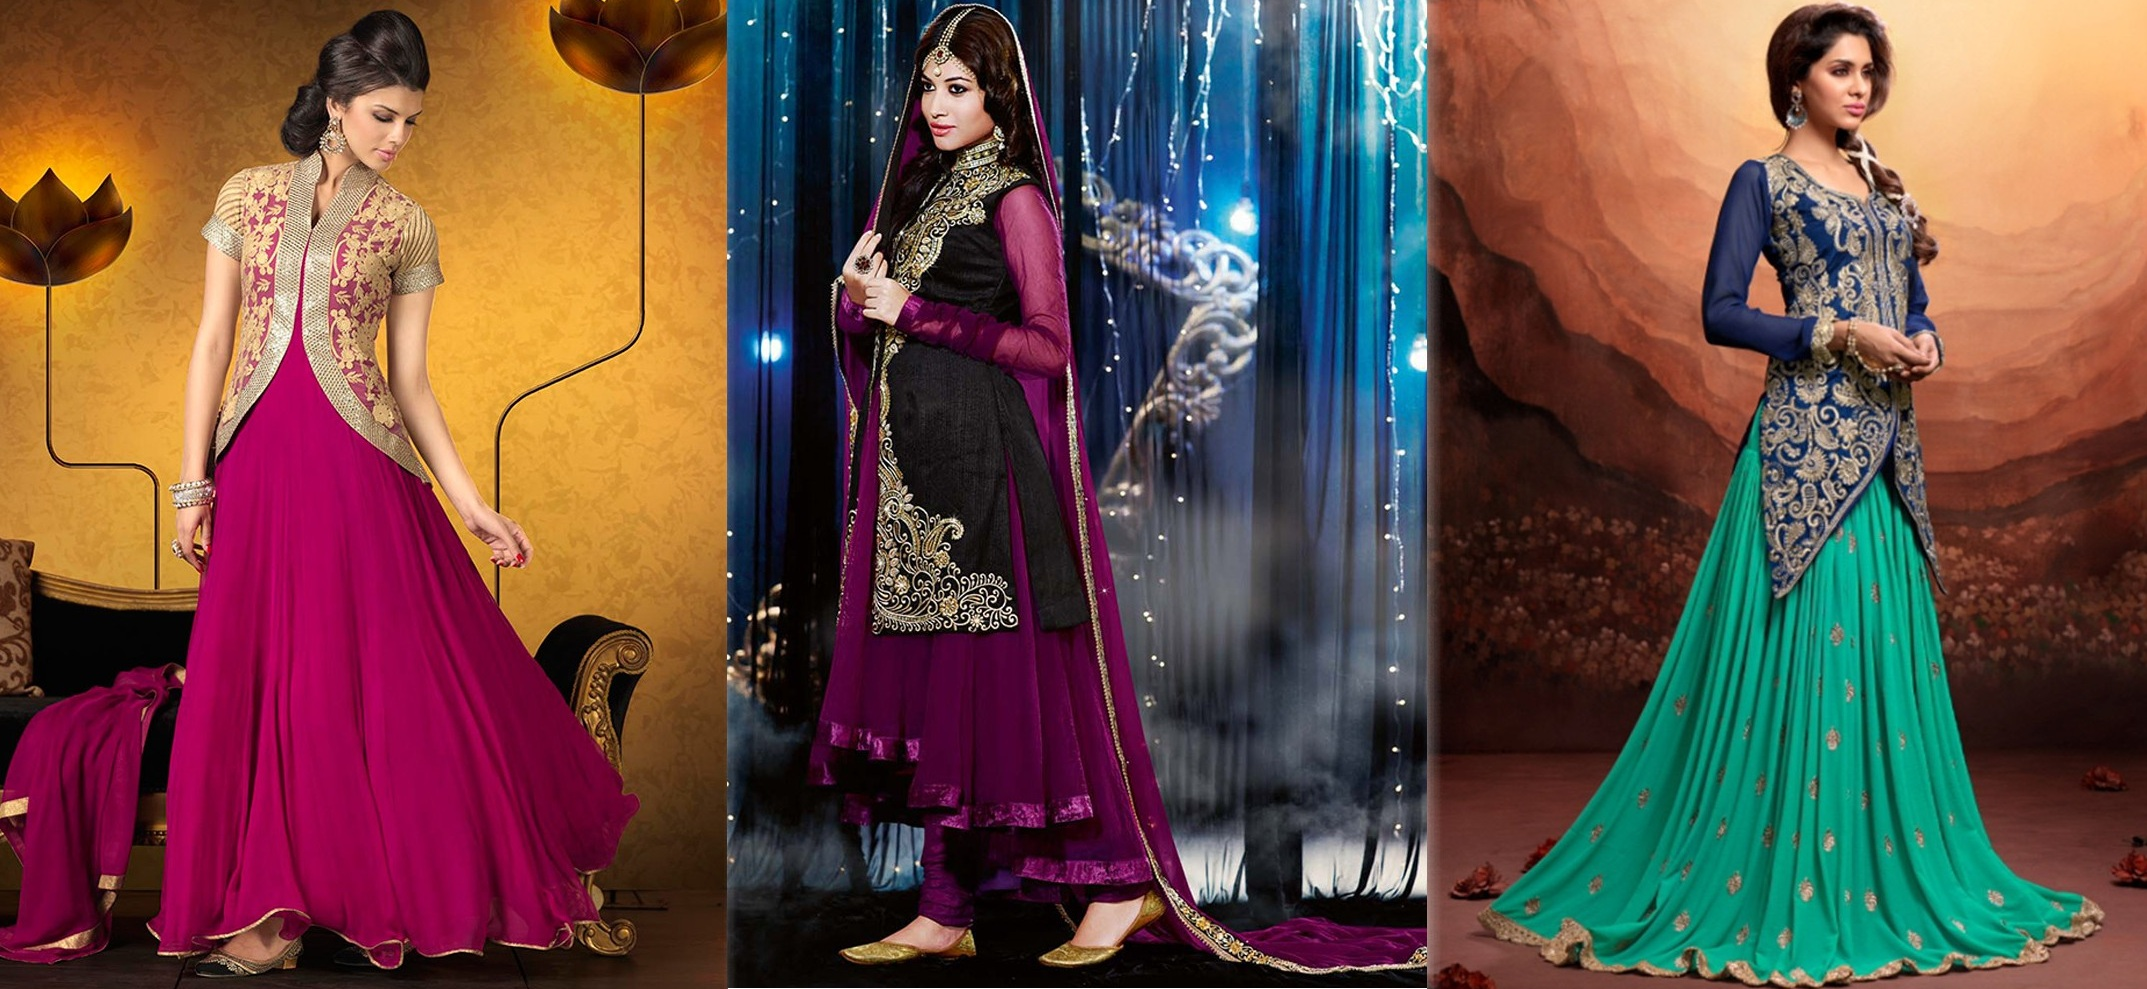 Latest Indian Designer Collection Jacket Styled Dresses Anarkali Suits for Girls 2014-2015 (1)